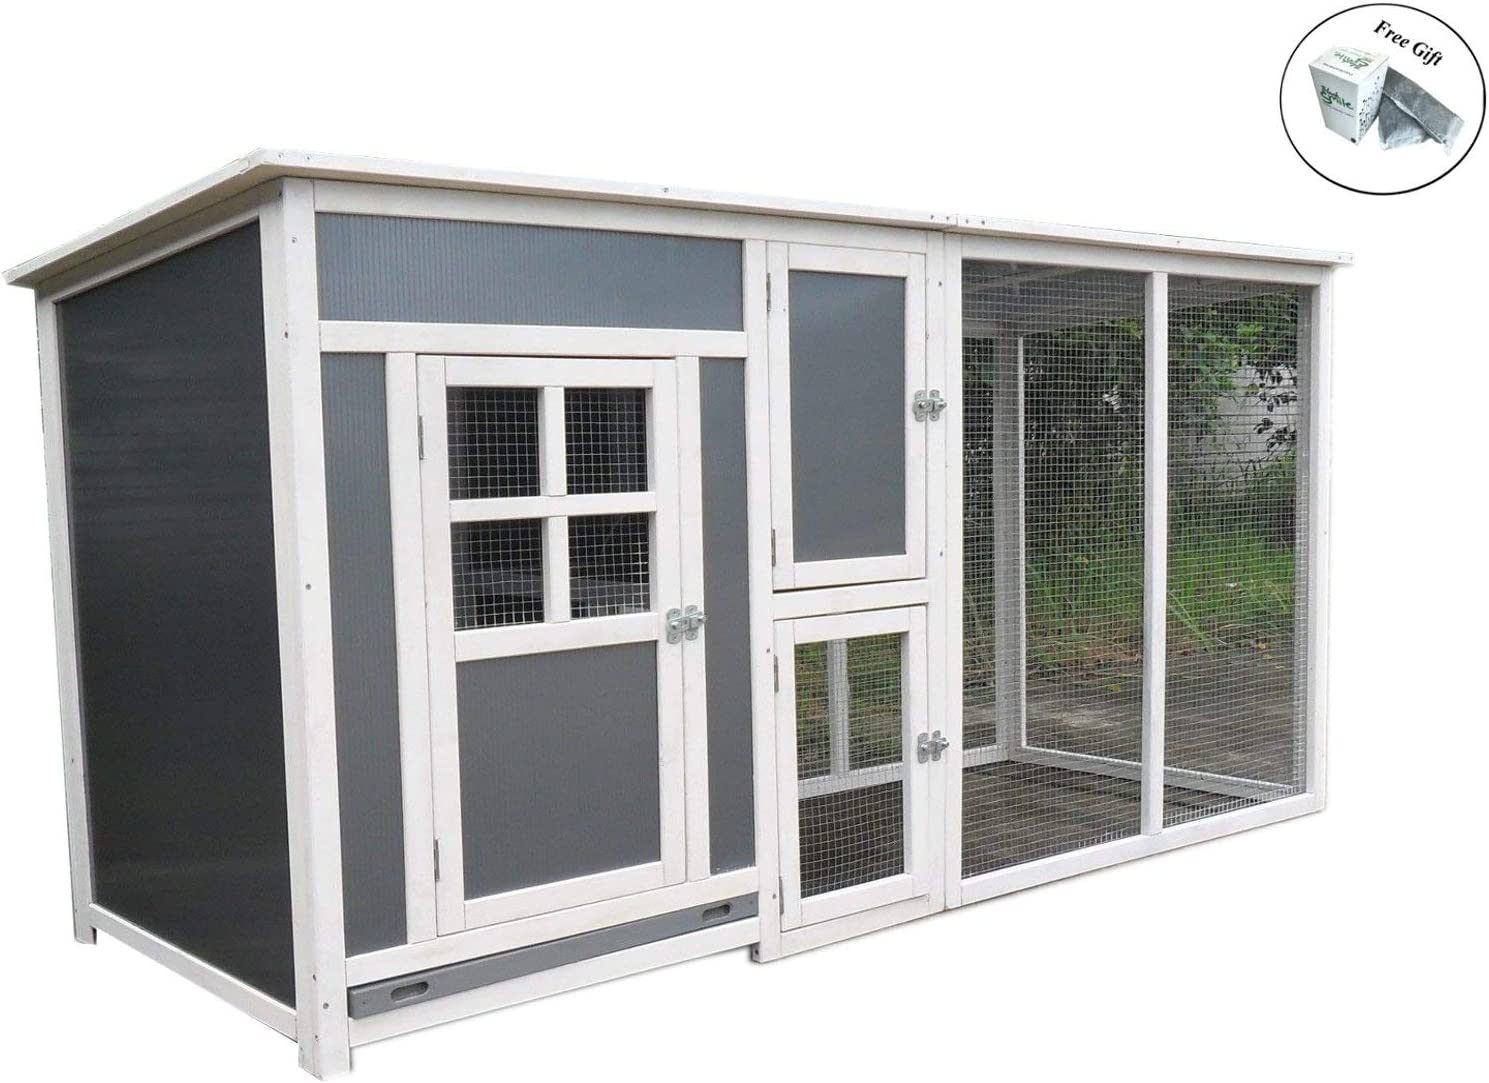 "78/"" Big Wood Frame Plastic Hen Chicken Cage House Coop with Run nesting box"